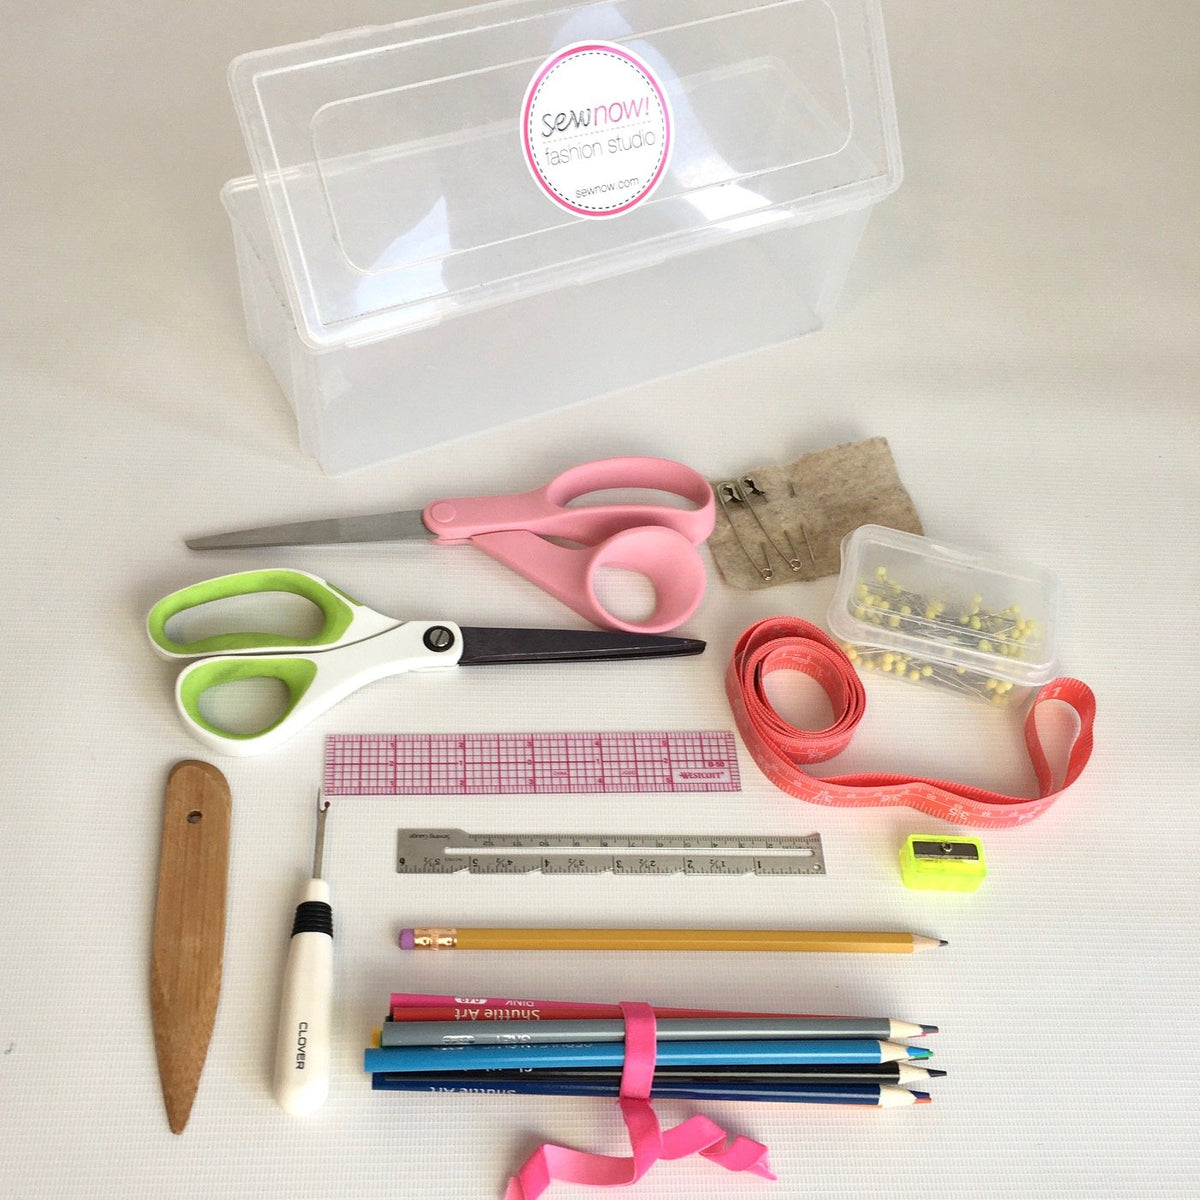 Sewing Essentials Tool Kit - Used